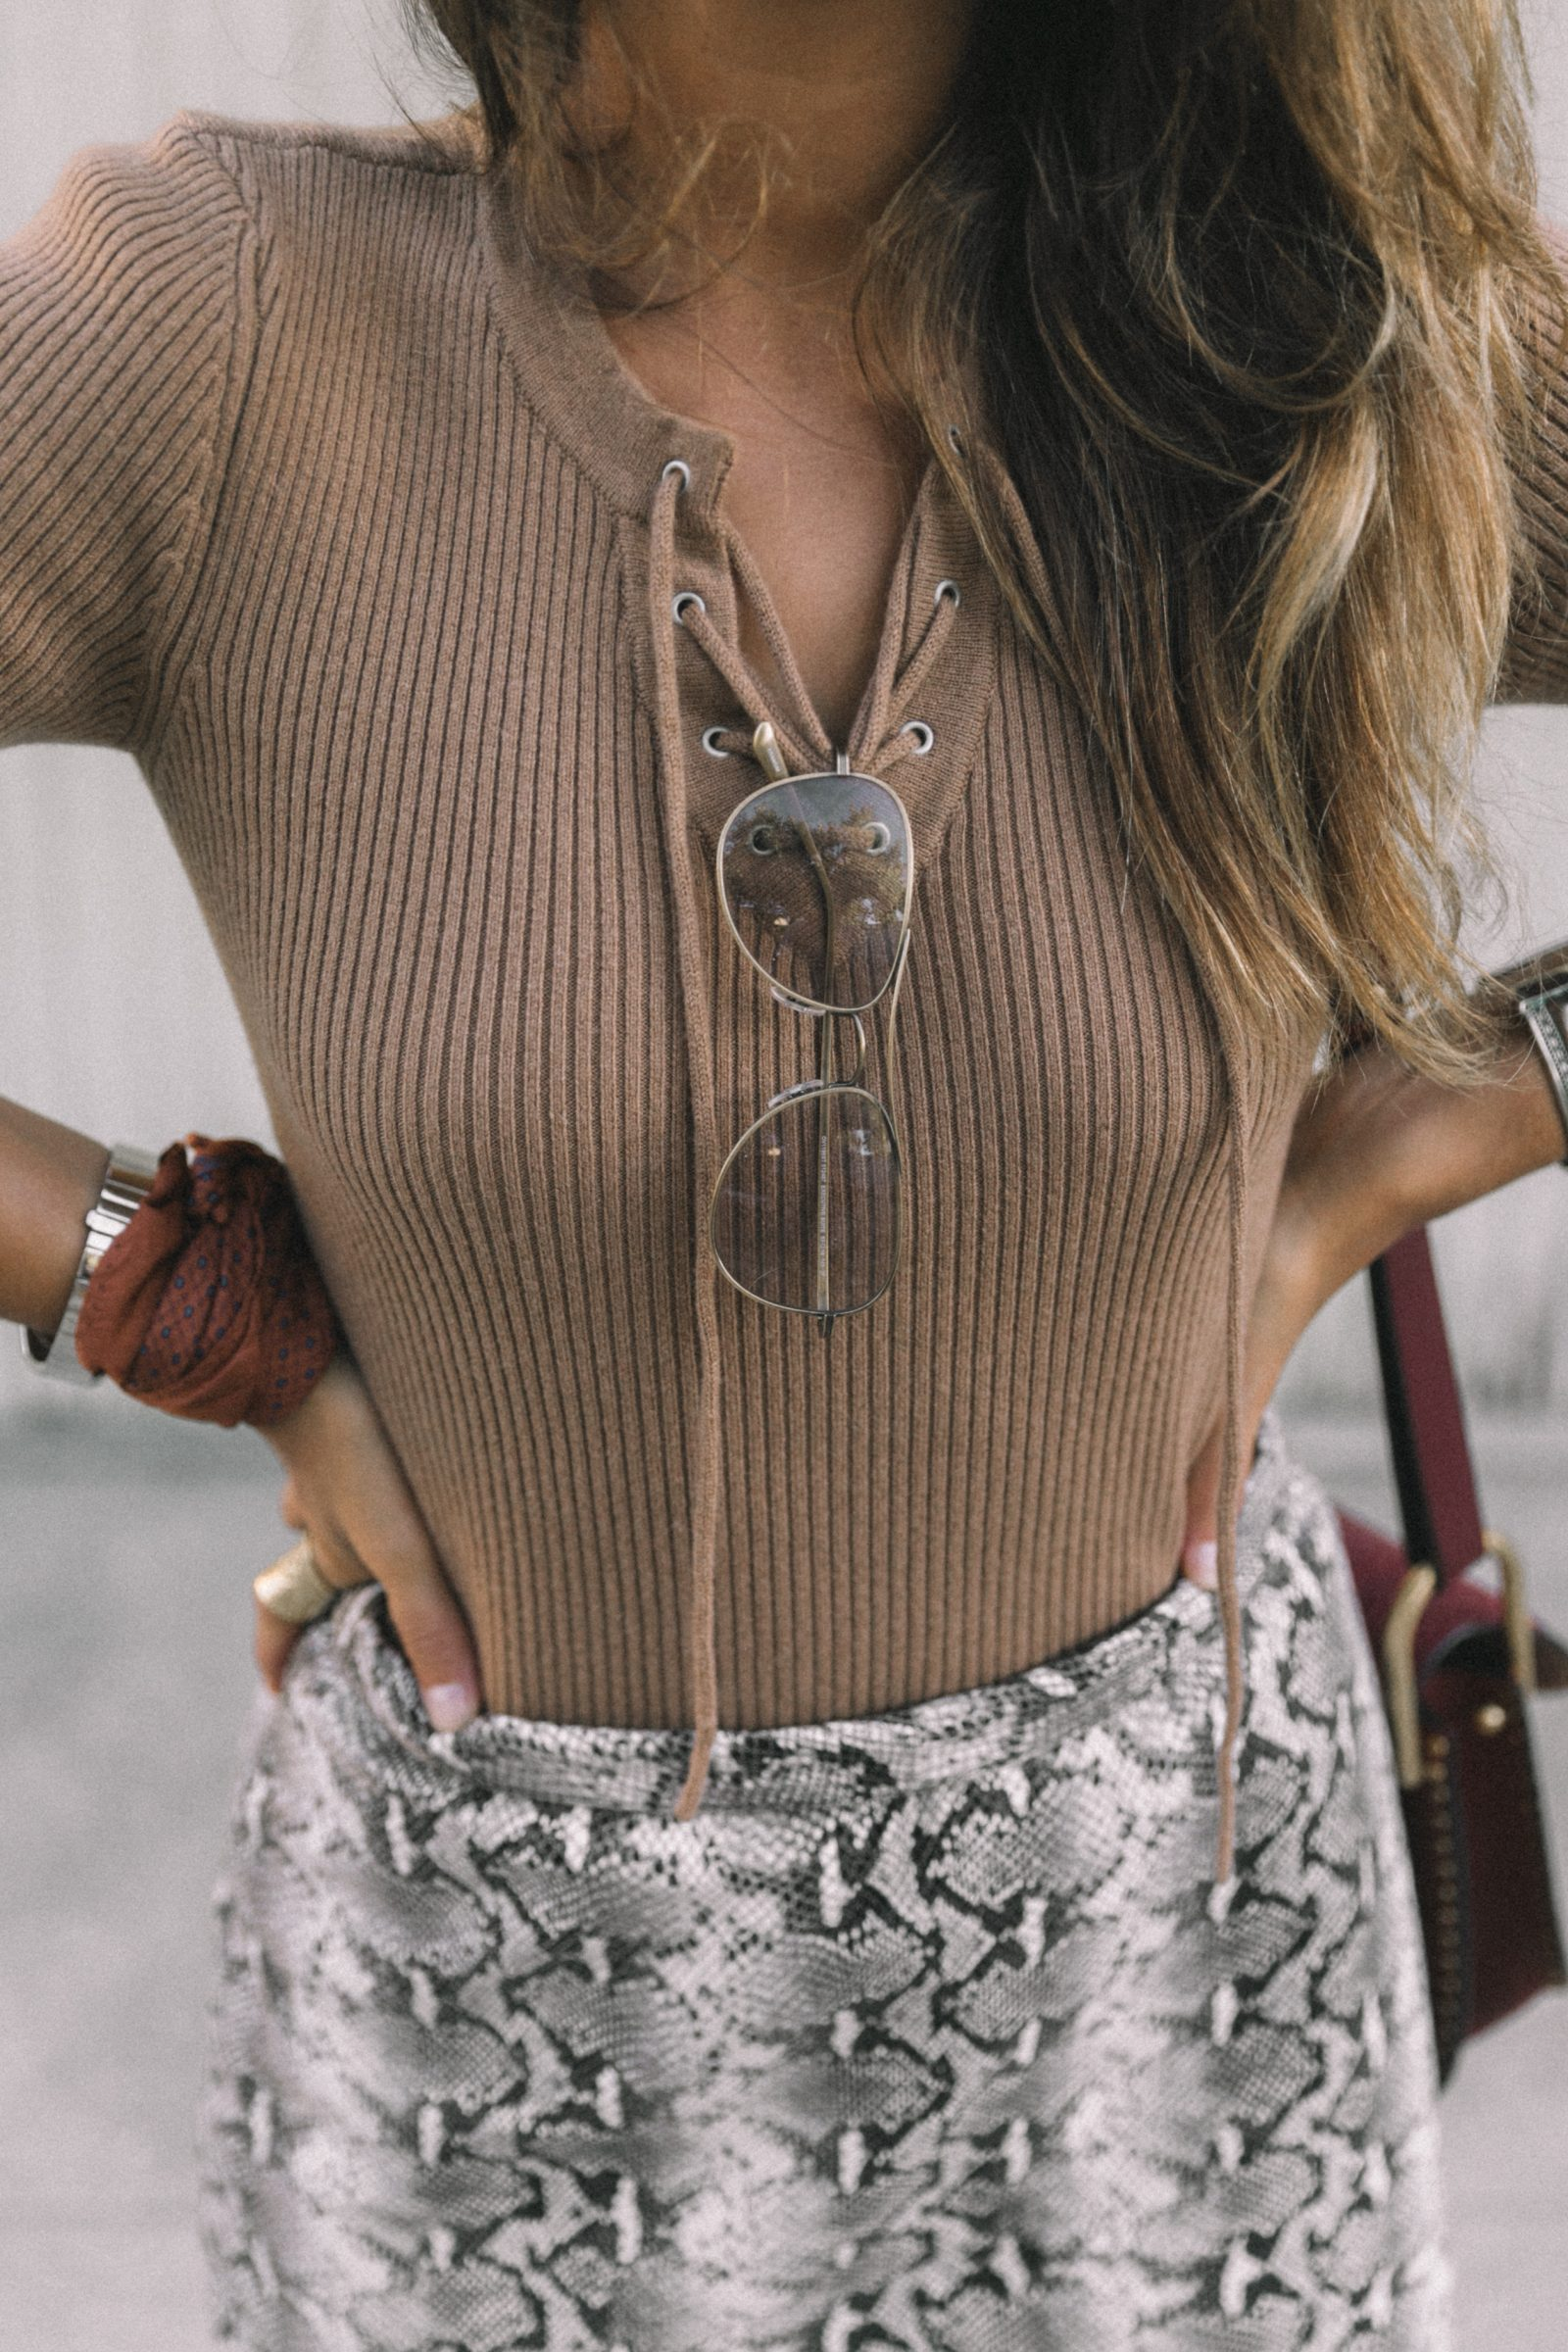 lpa_the_label-revolve_clothing-snake_skirt-lace_up_sweater-knotted_sandals-chloe_hudson_bag-outfit-street_style-los_angeles-39